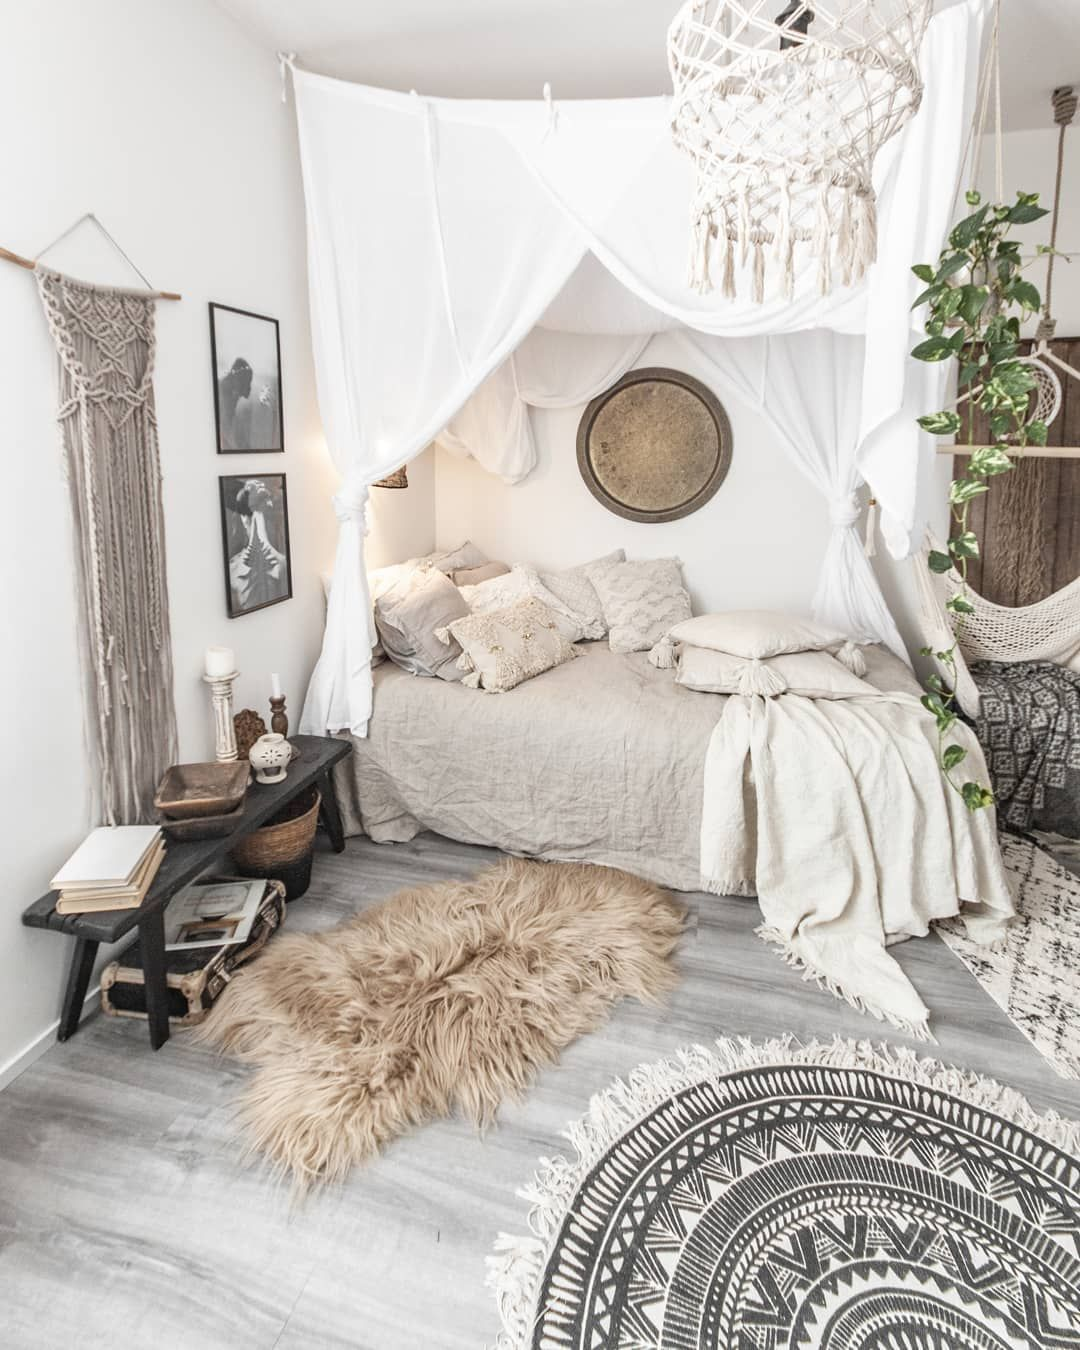 Cozy Modern Homedecor: White Bedroom Interior With Bohemian Style Is Bright And